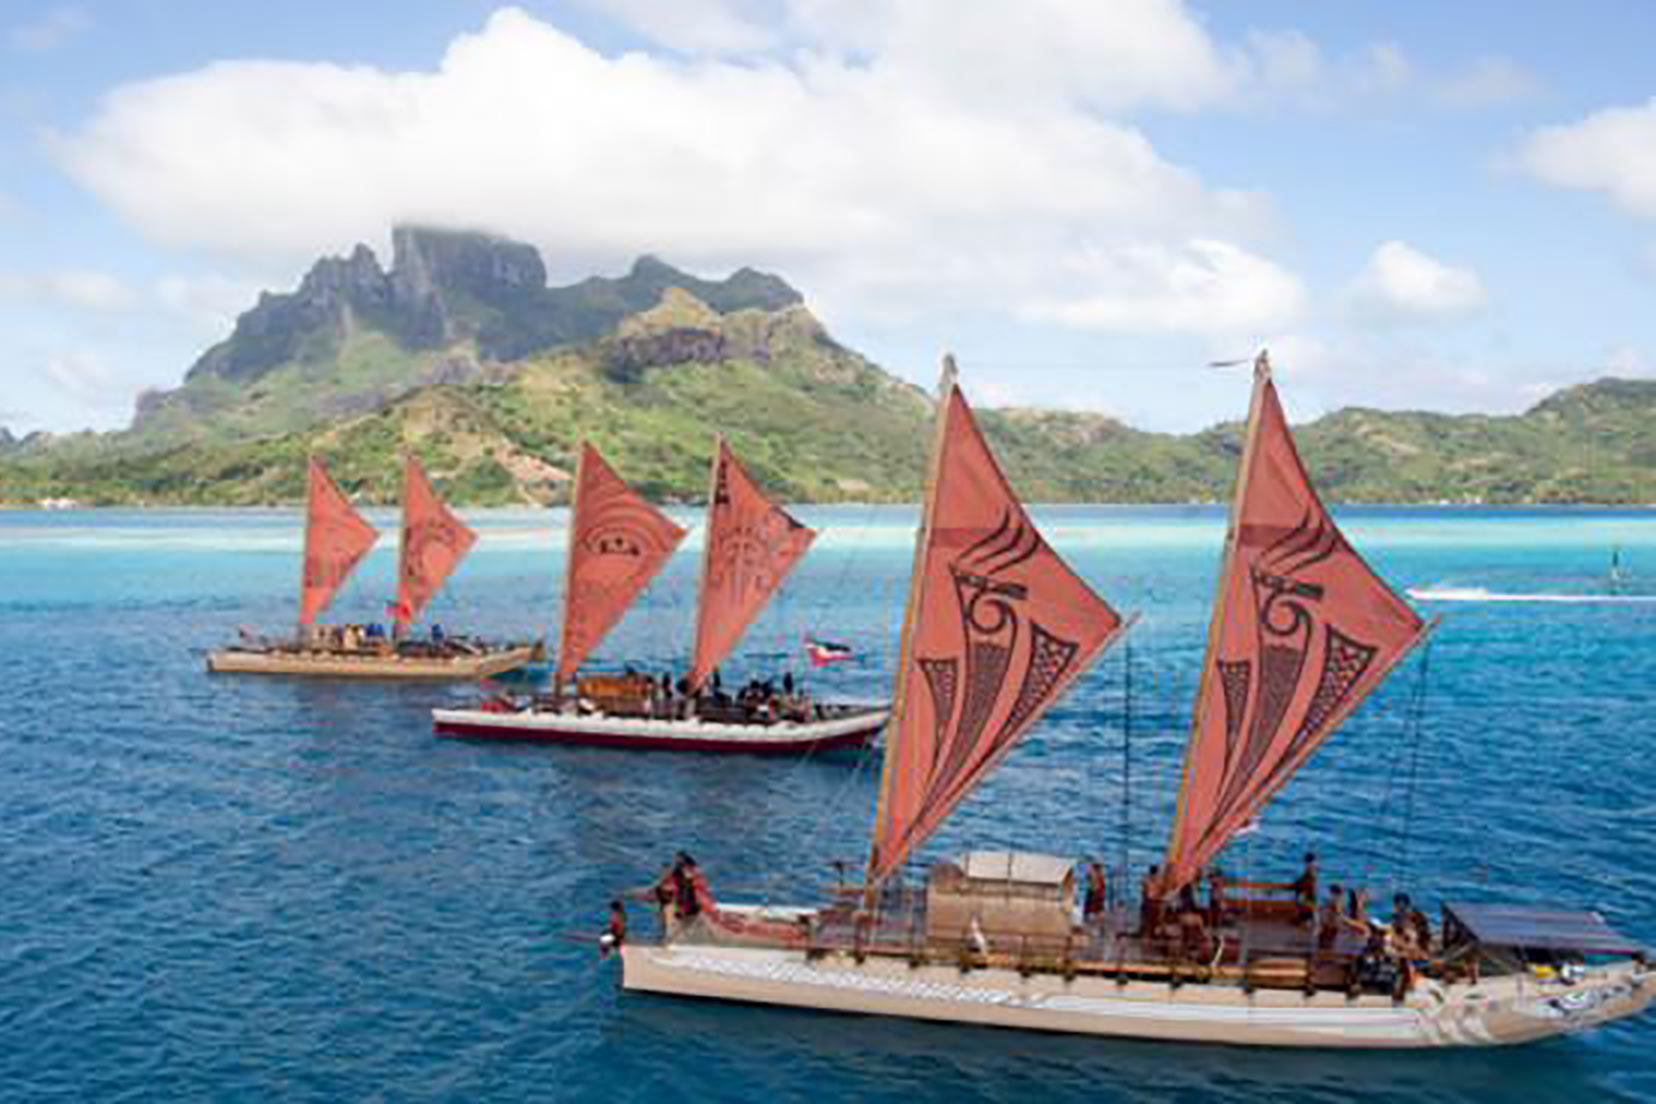 traditional sailing boats against an island backdrop